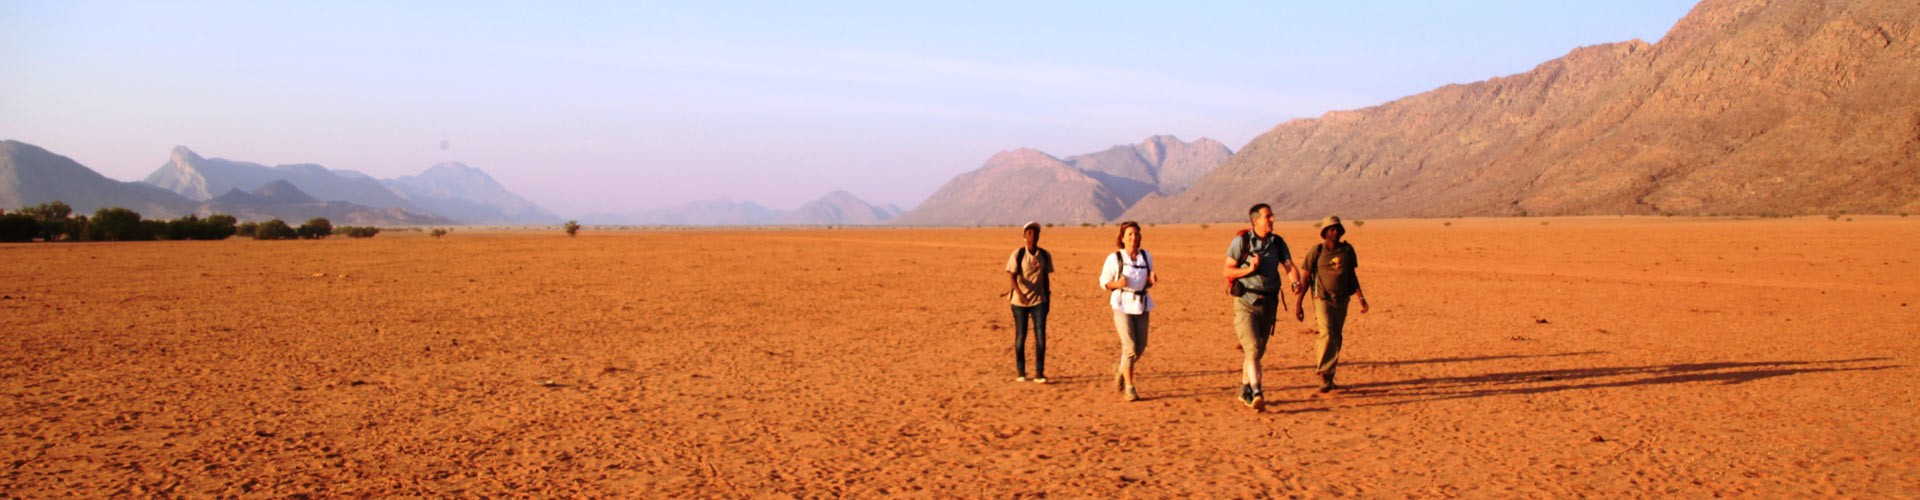 Safaris en groupe en Namibie